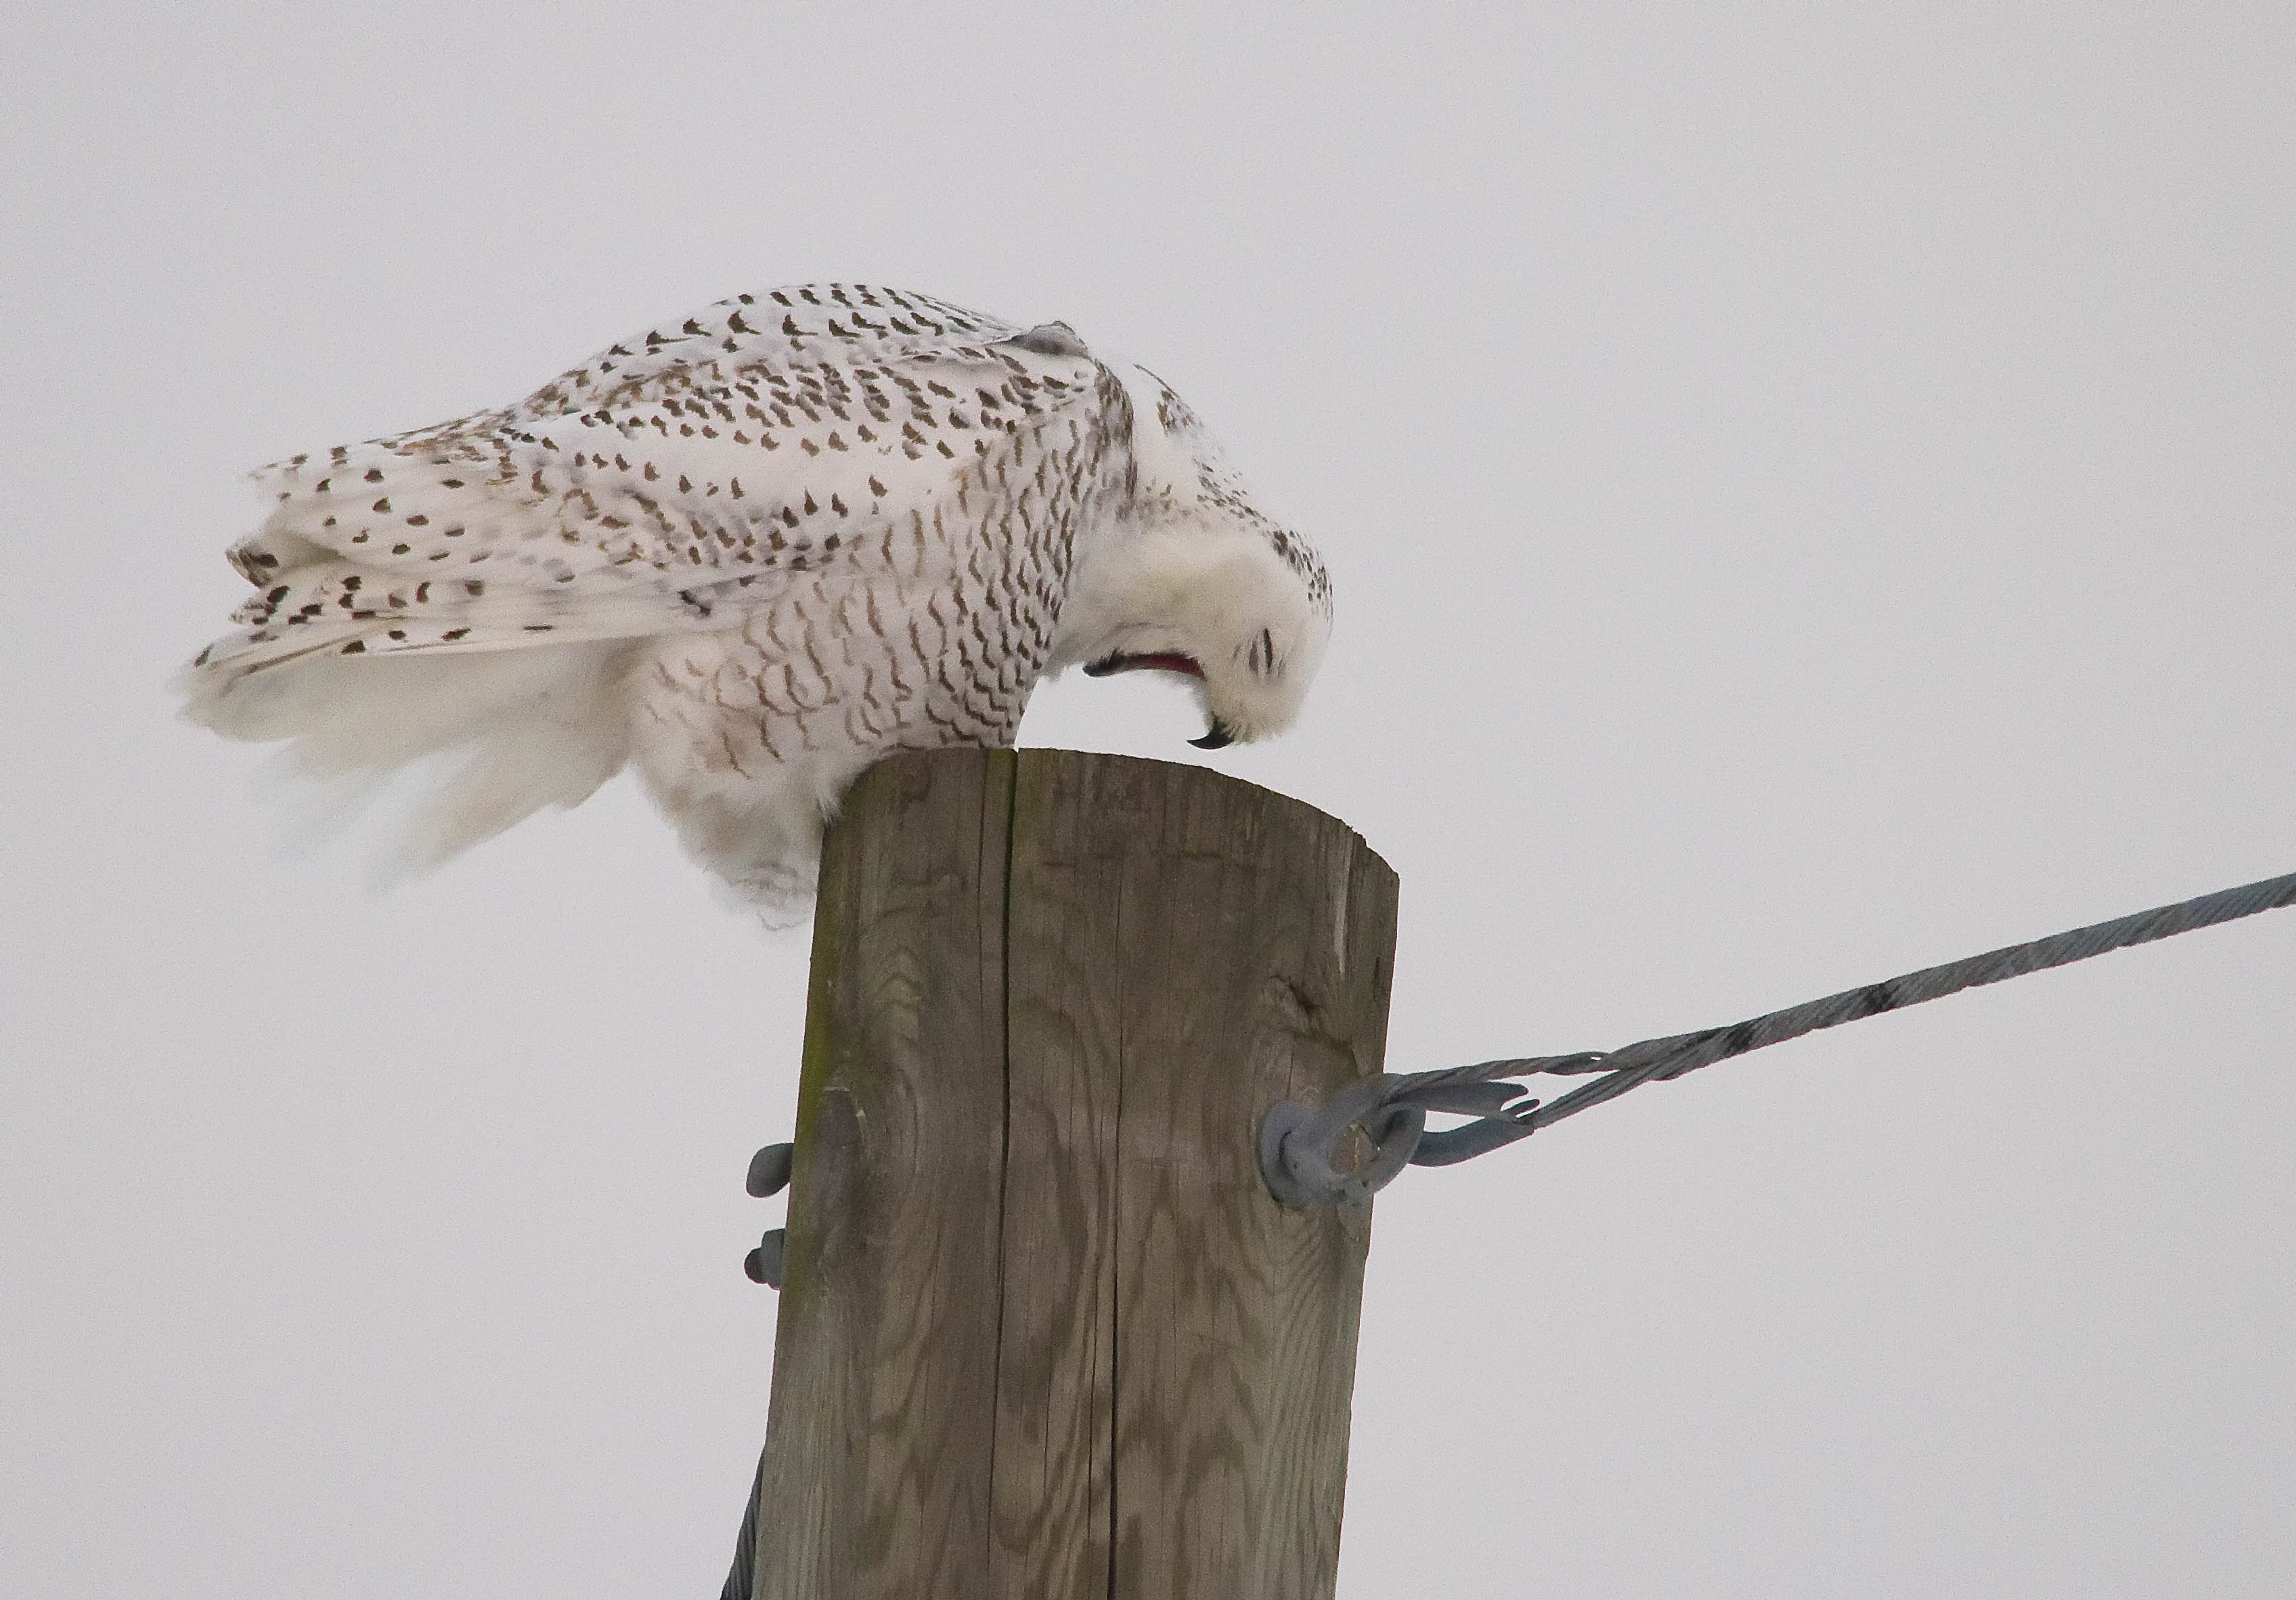 Snowy Owl barfing up a Pellet